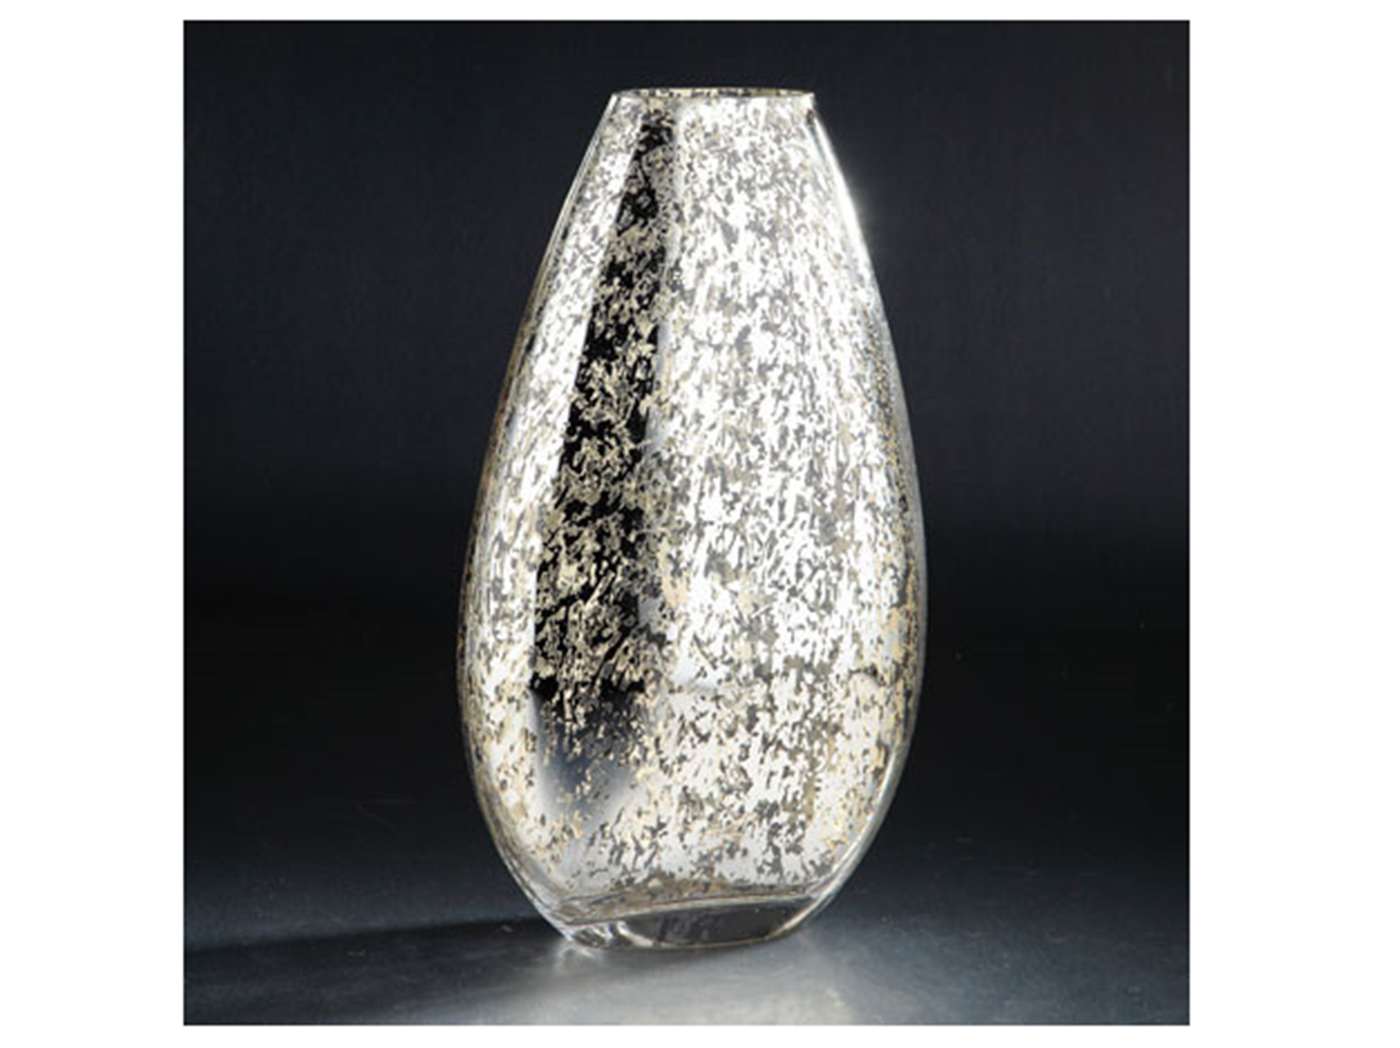 "Small Mercury Glass Vase 9.5""W x 12""H"